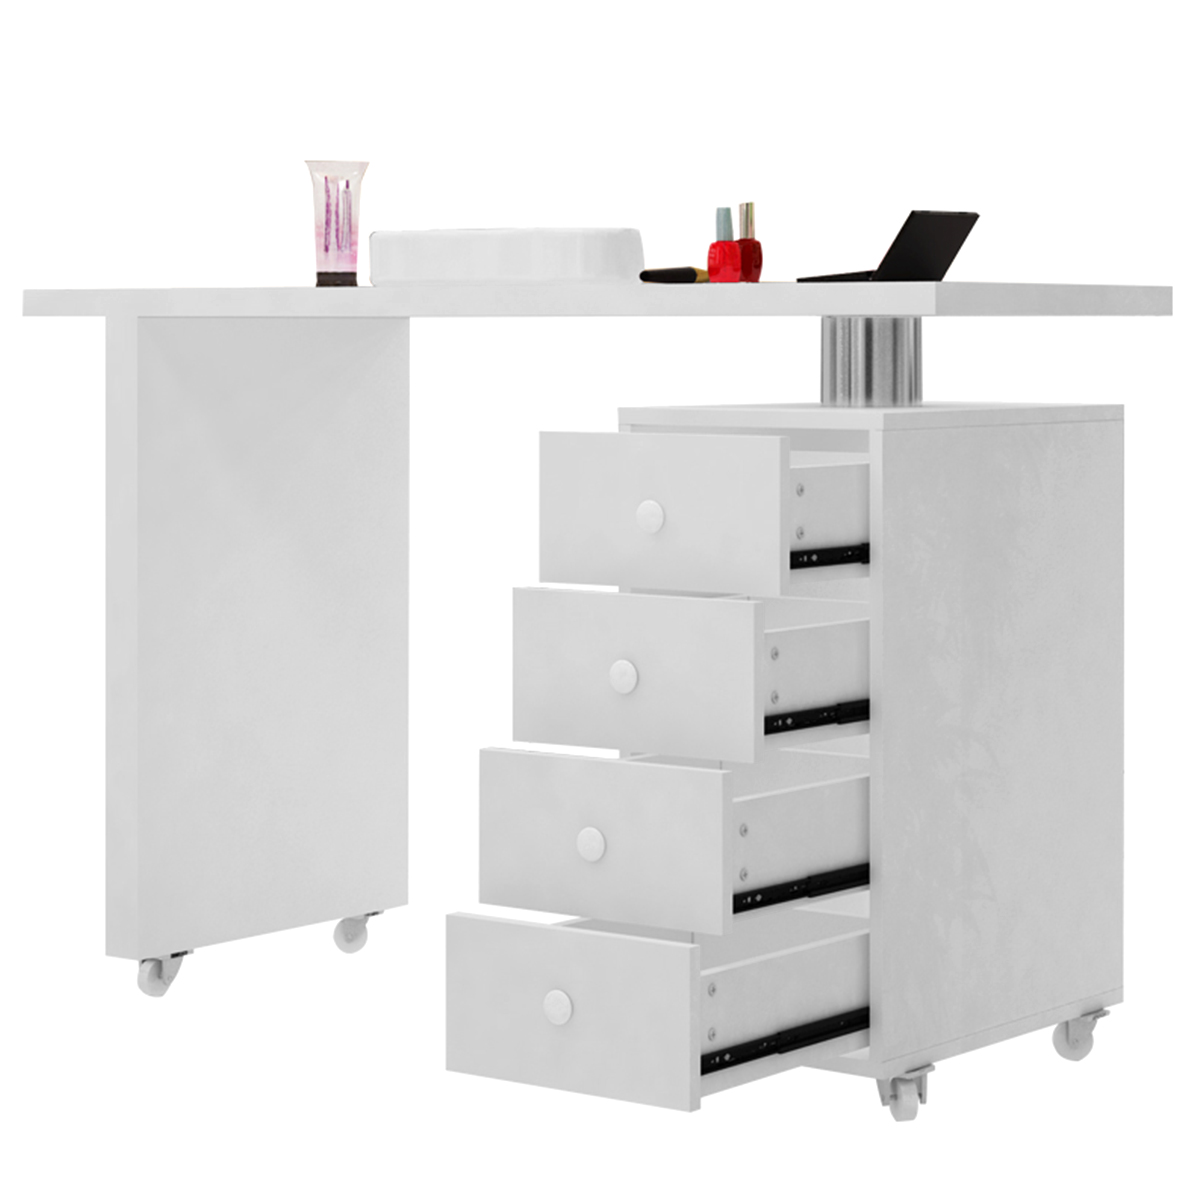 1set Manicure Table Profession Beauty Salon White Wooden Manicure Technicial Table Nail Station Desk With Four Drawers